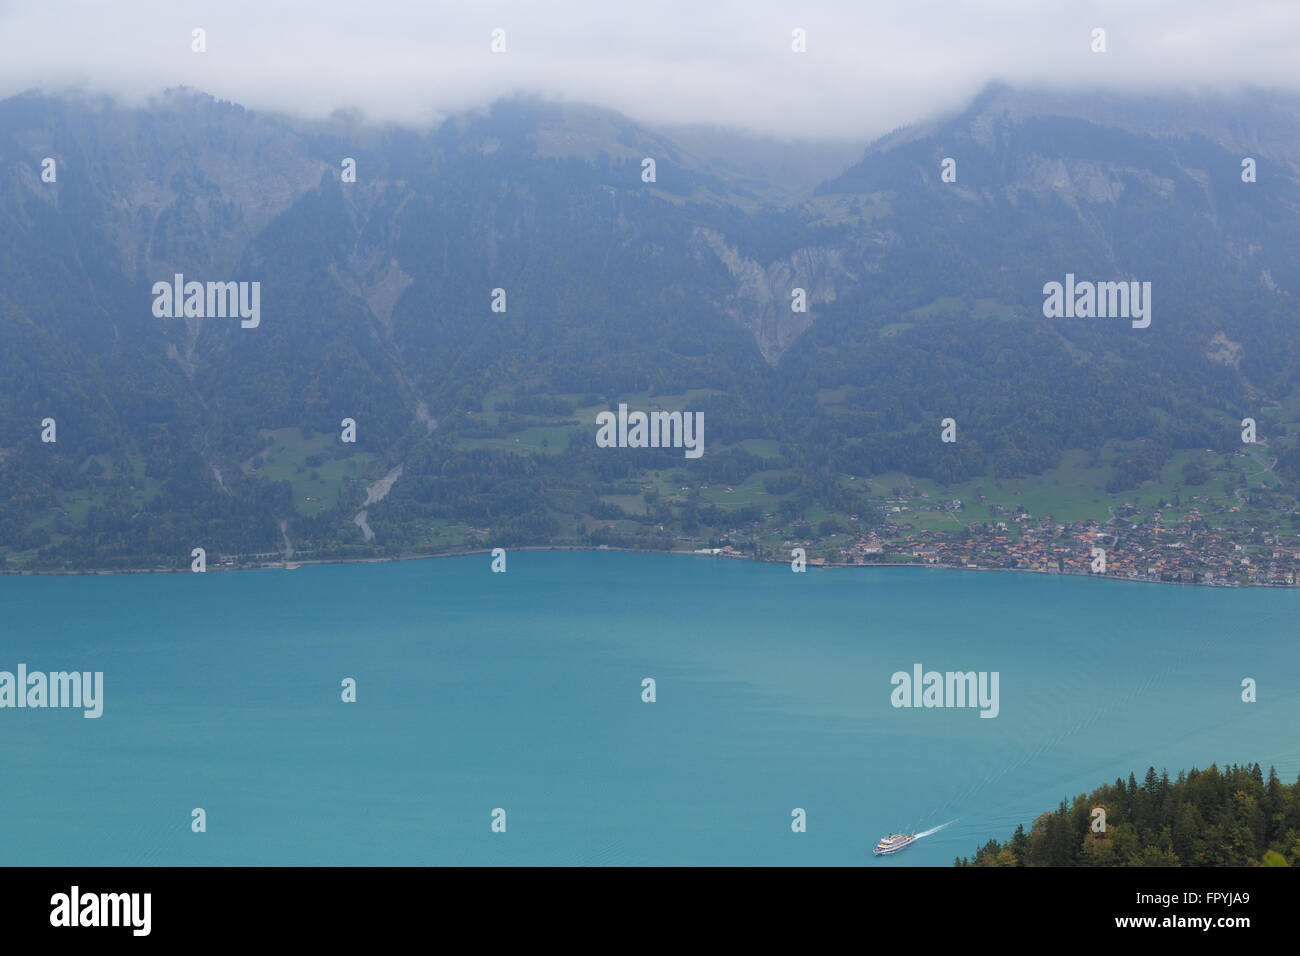 A landscape photograph of a passenger ferry on Lake Brienz in Switzerland. Stock Photo